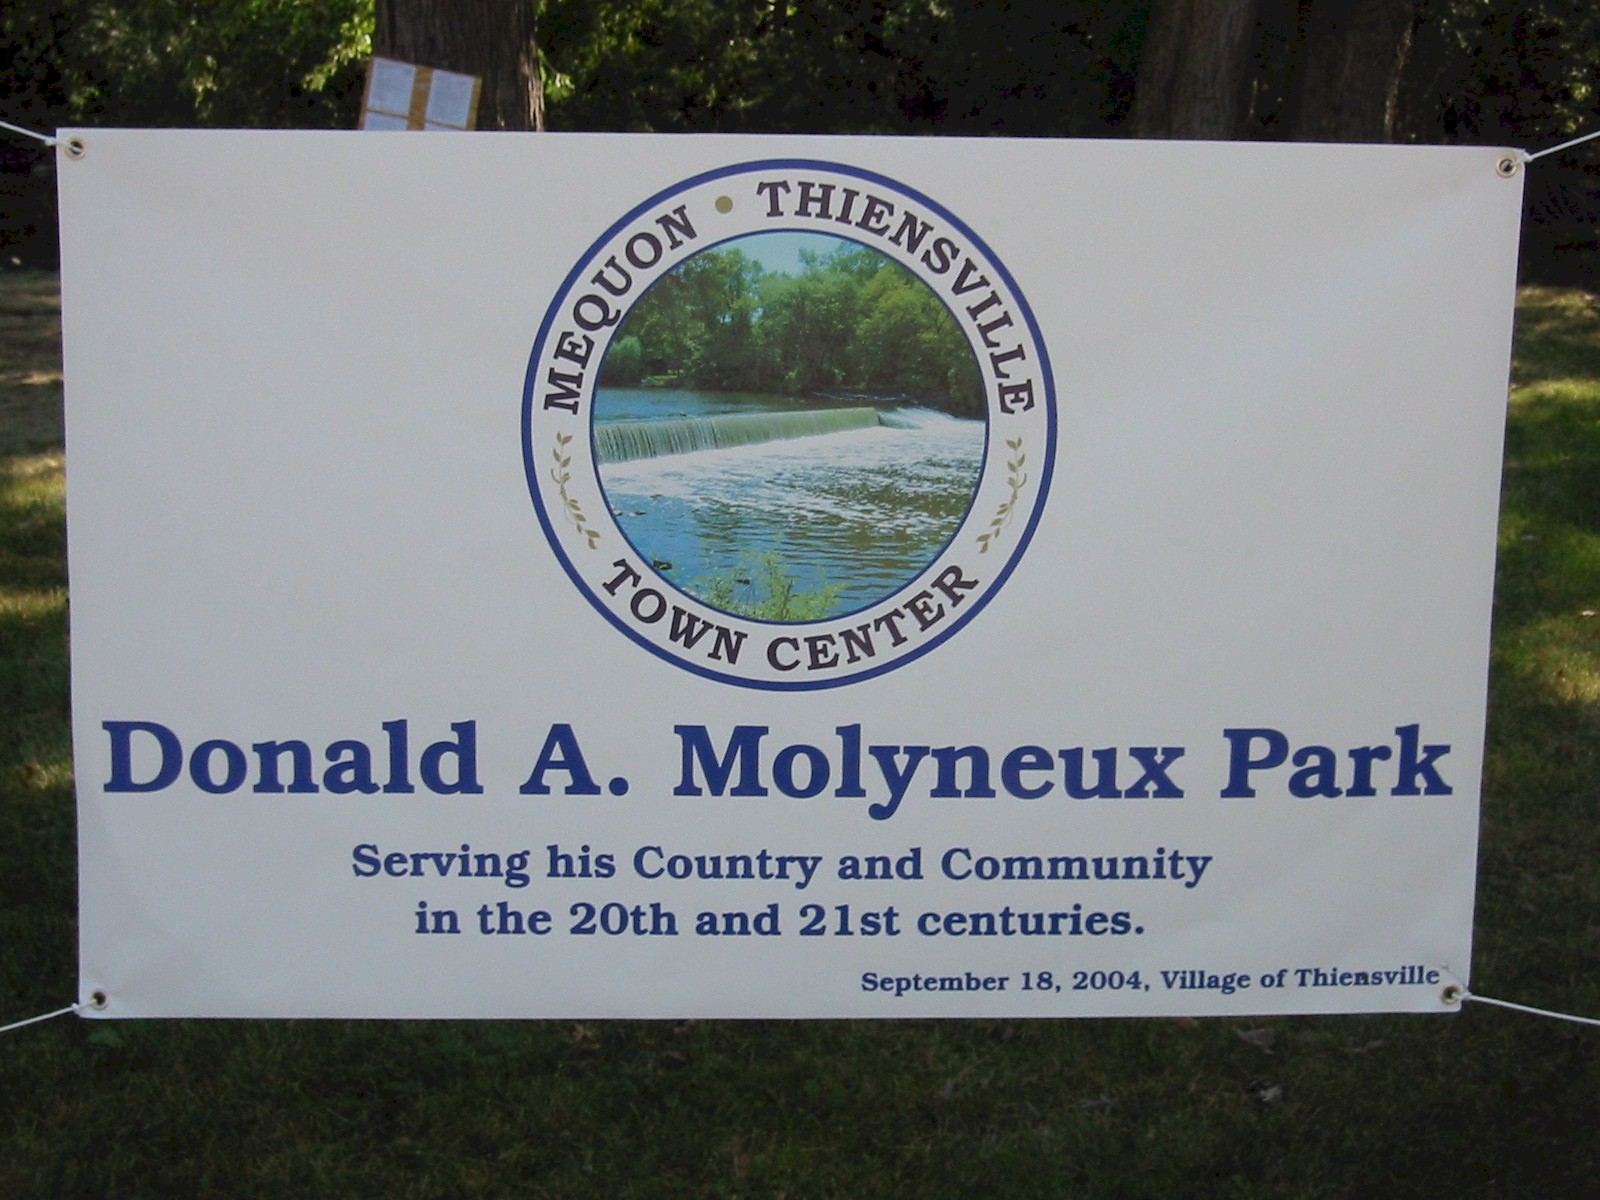 Canoe Launch and Park Dedication